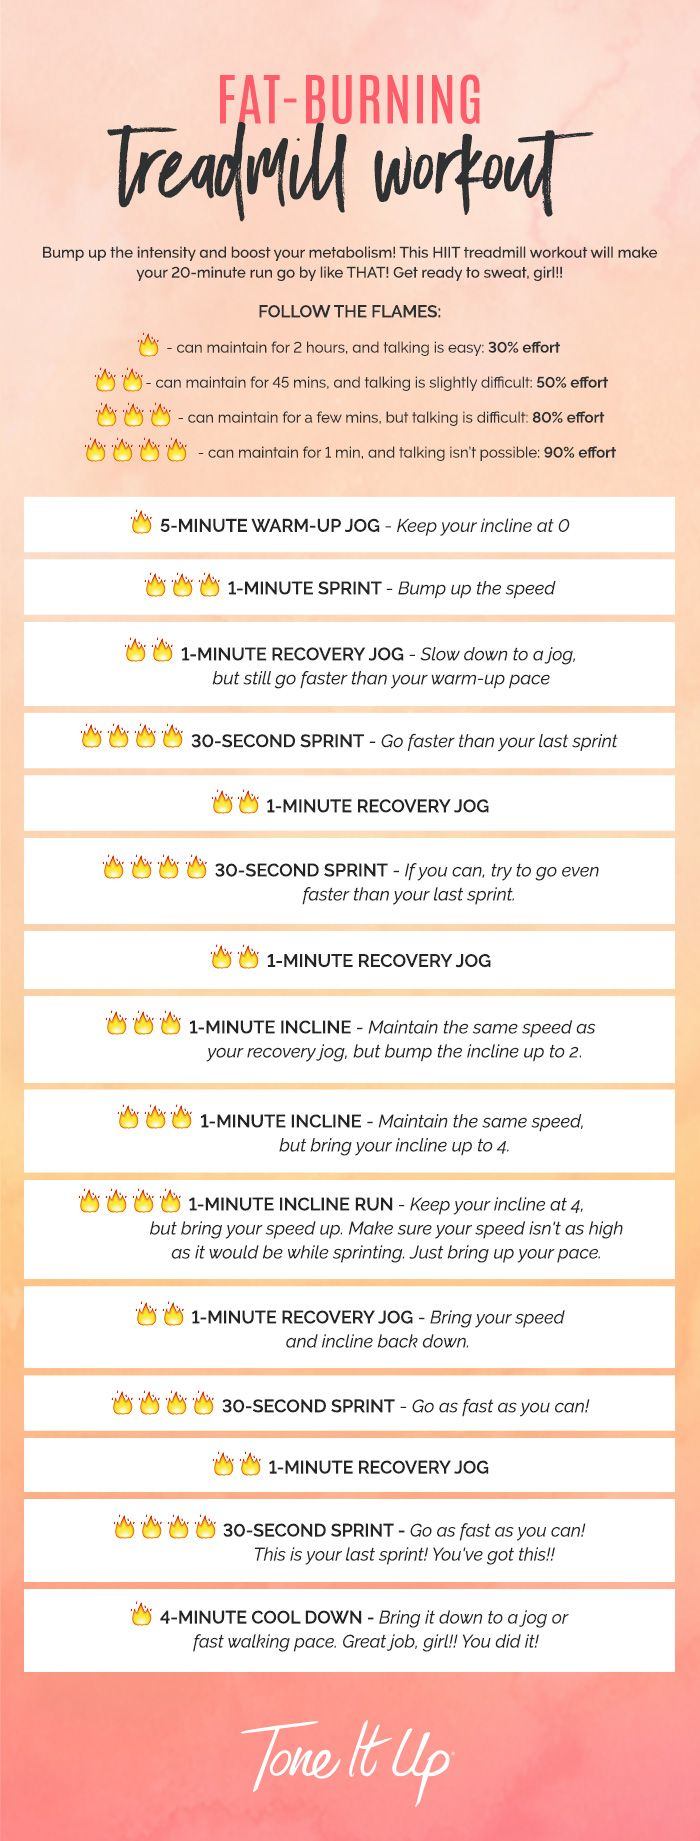 NEW Metabolism-Boosting, Fat-Burning Treadmill Workout – ToneItUp.com